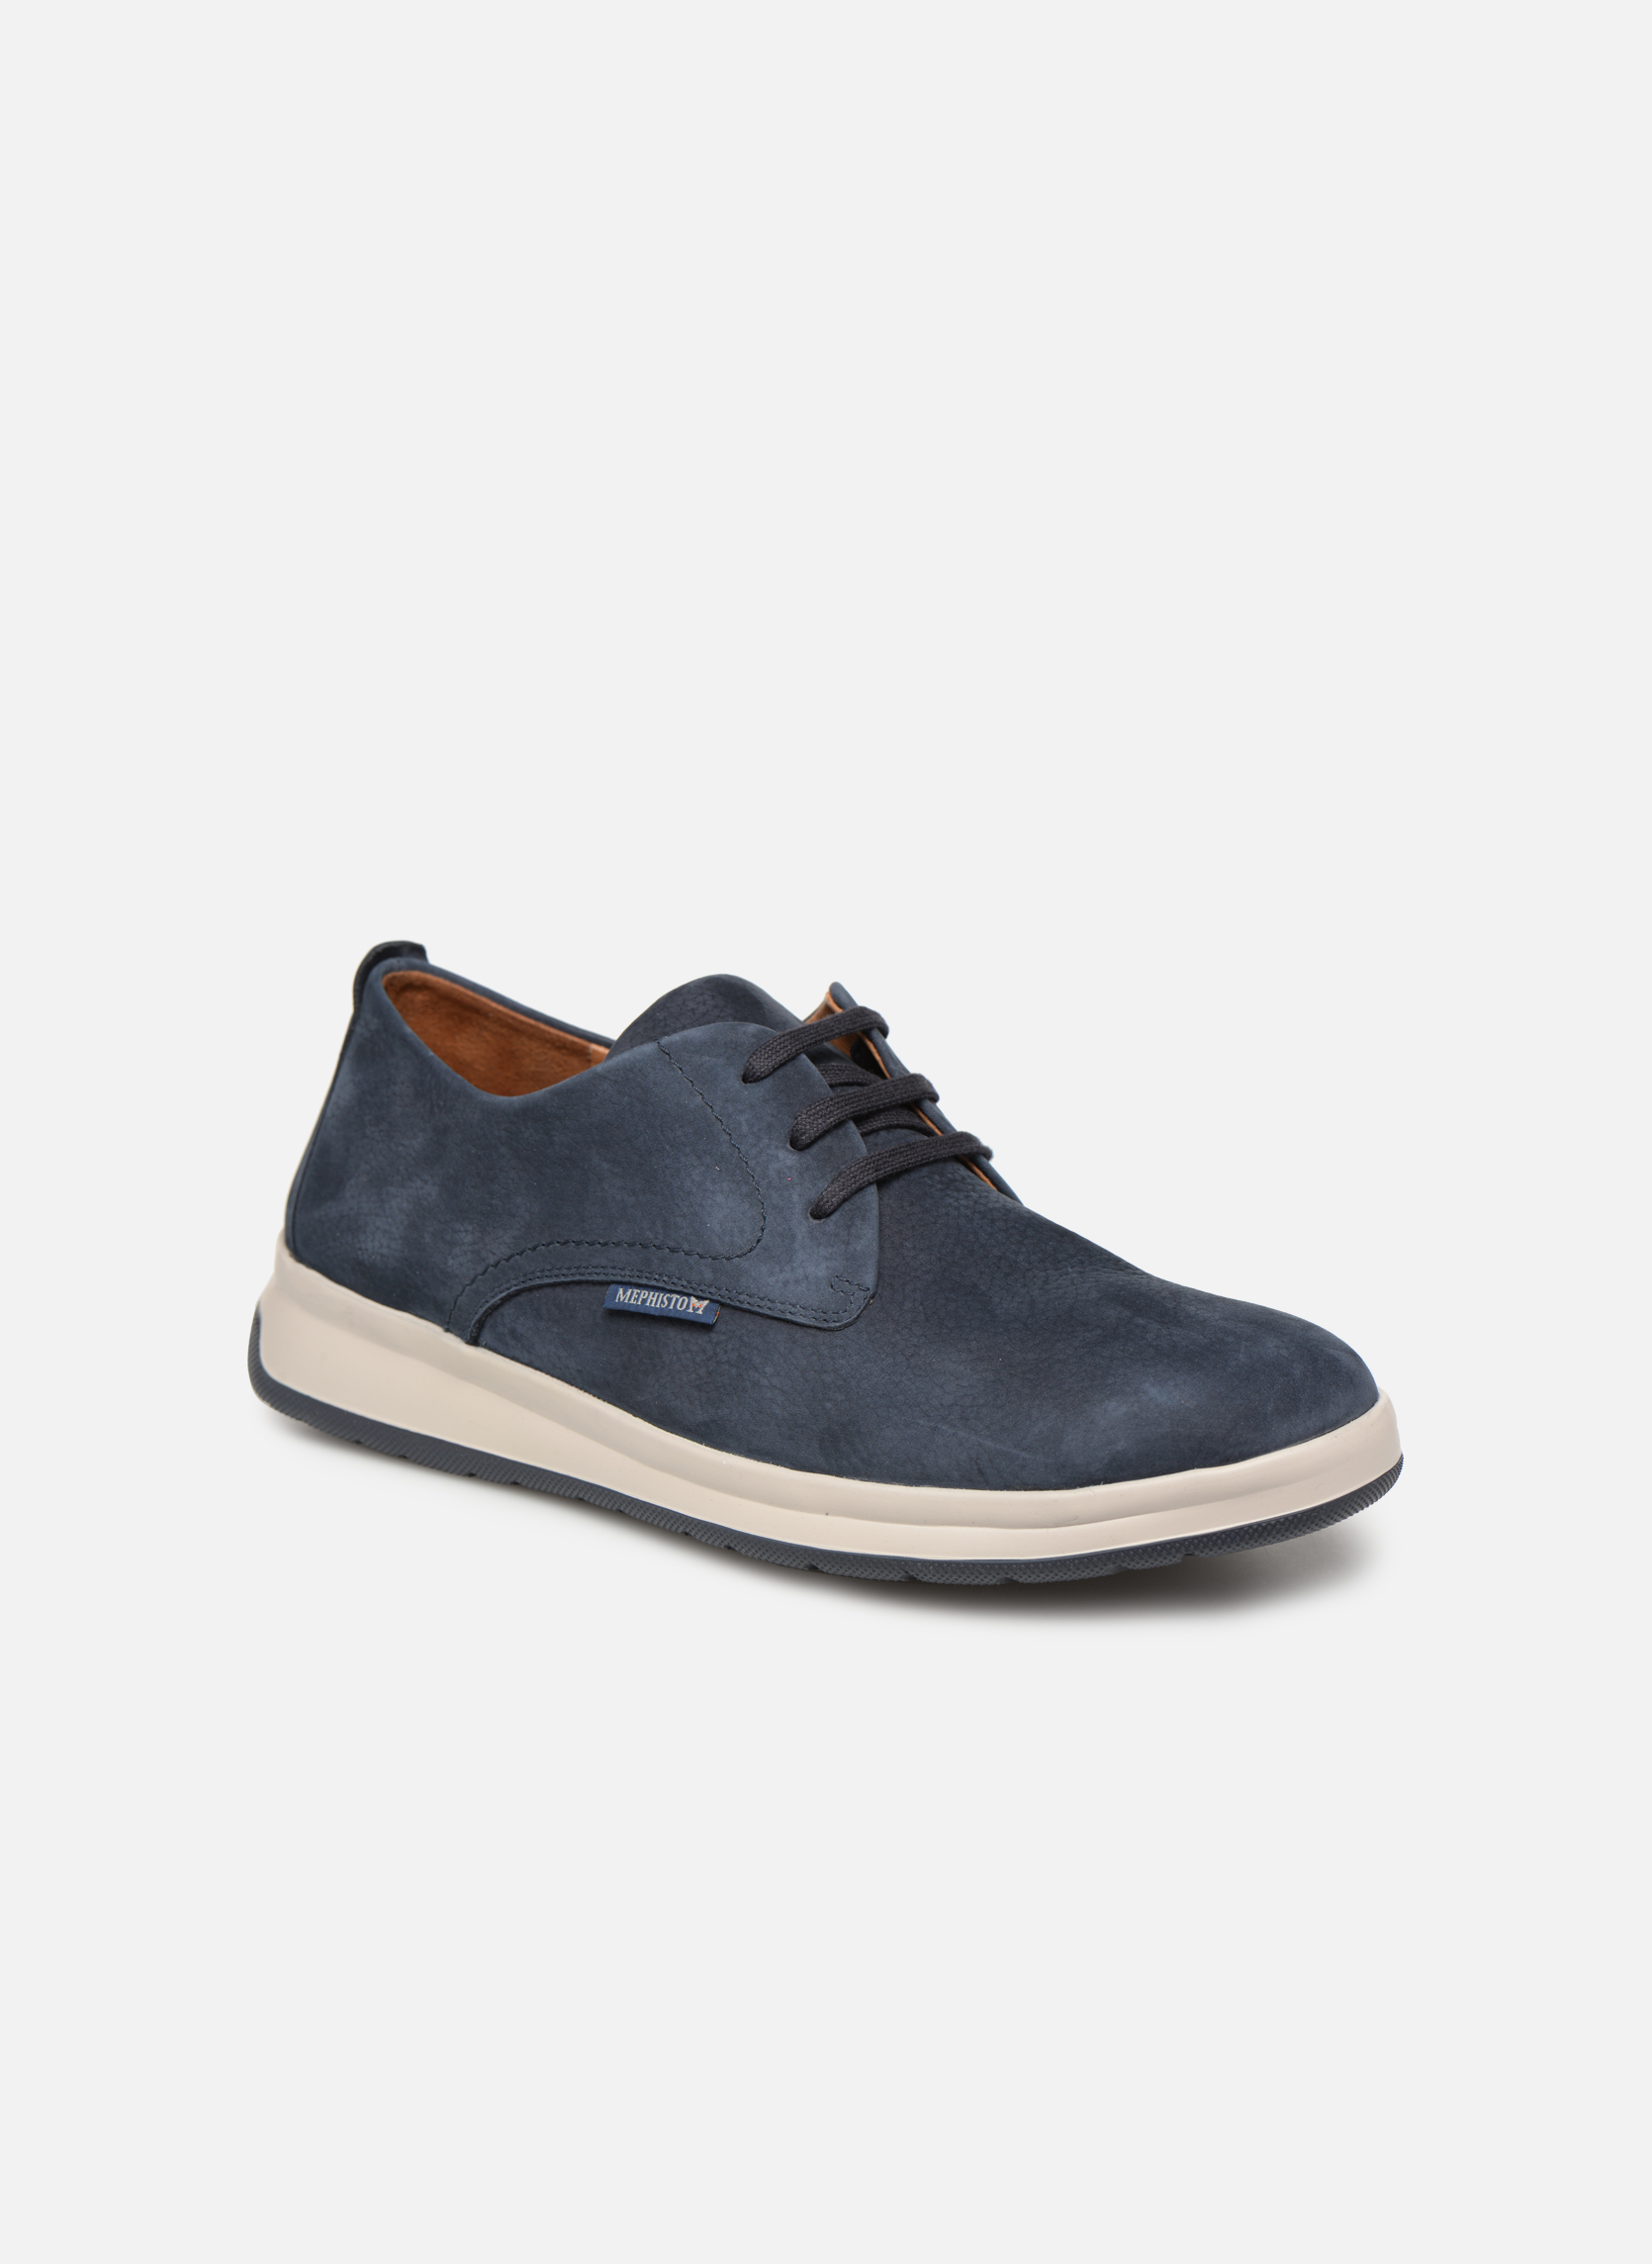 Sneakers Lester by Mephisto